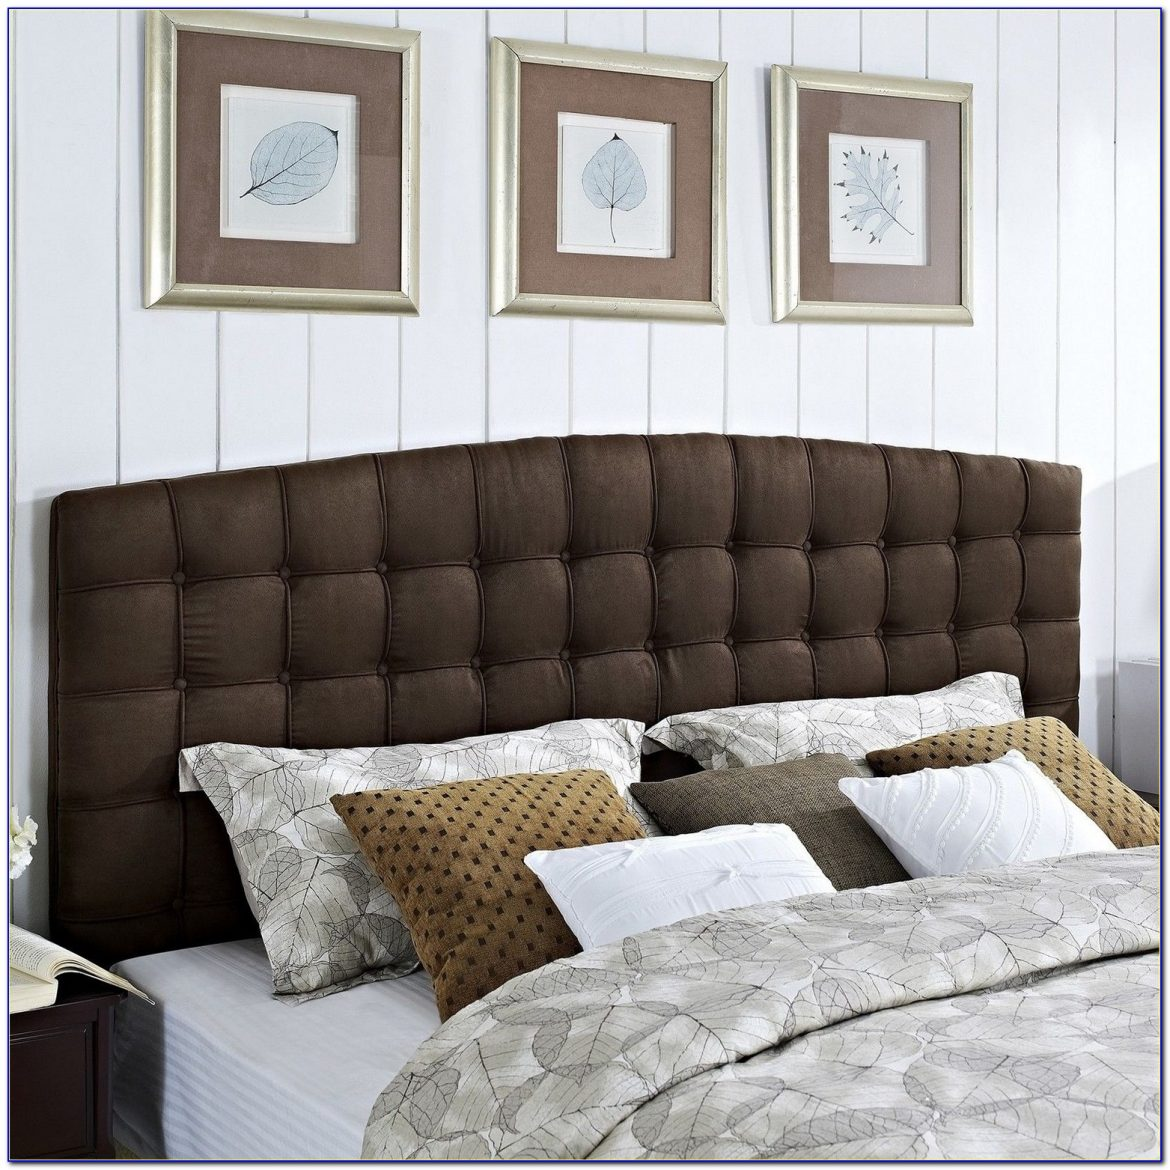 Upholstered Headboards For King Size Beds